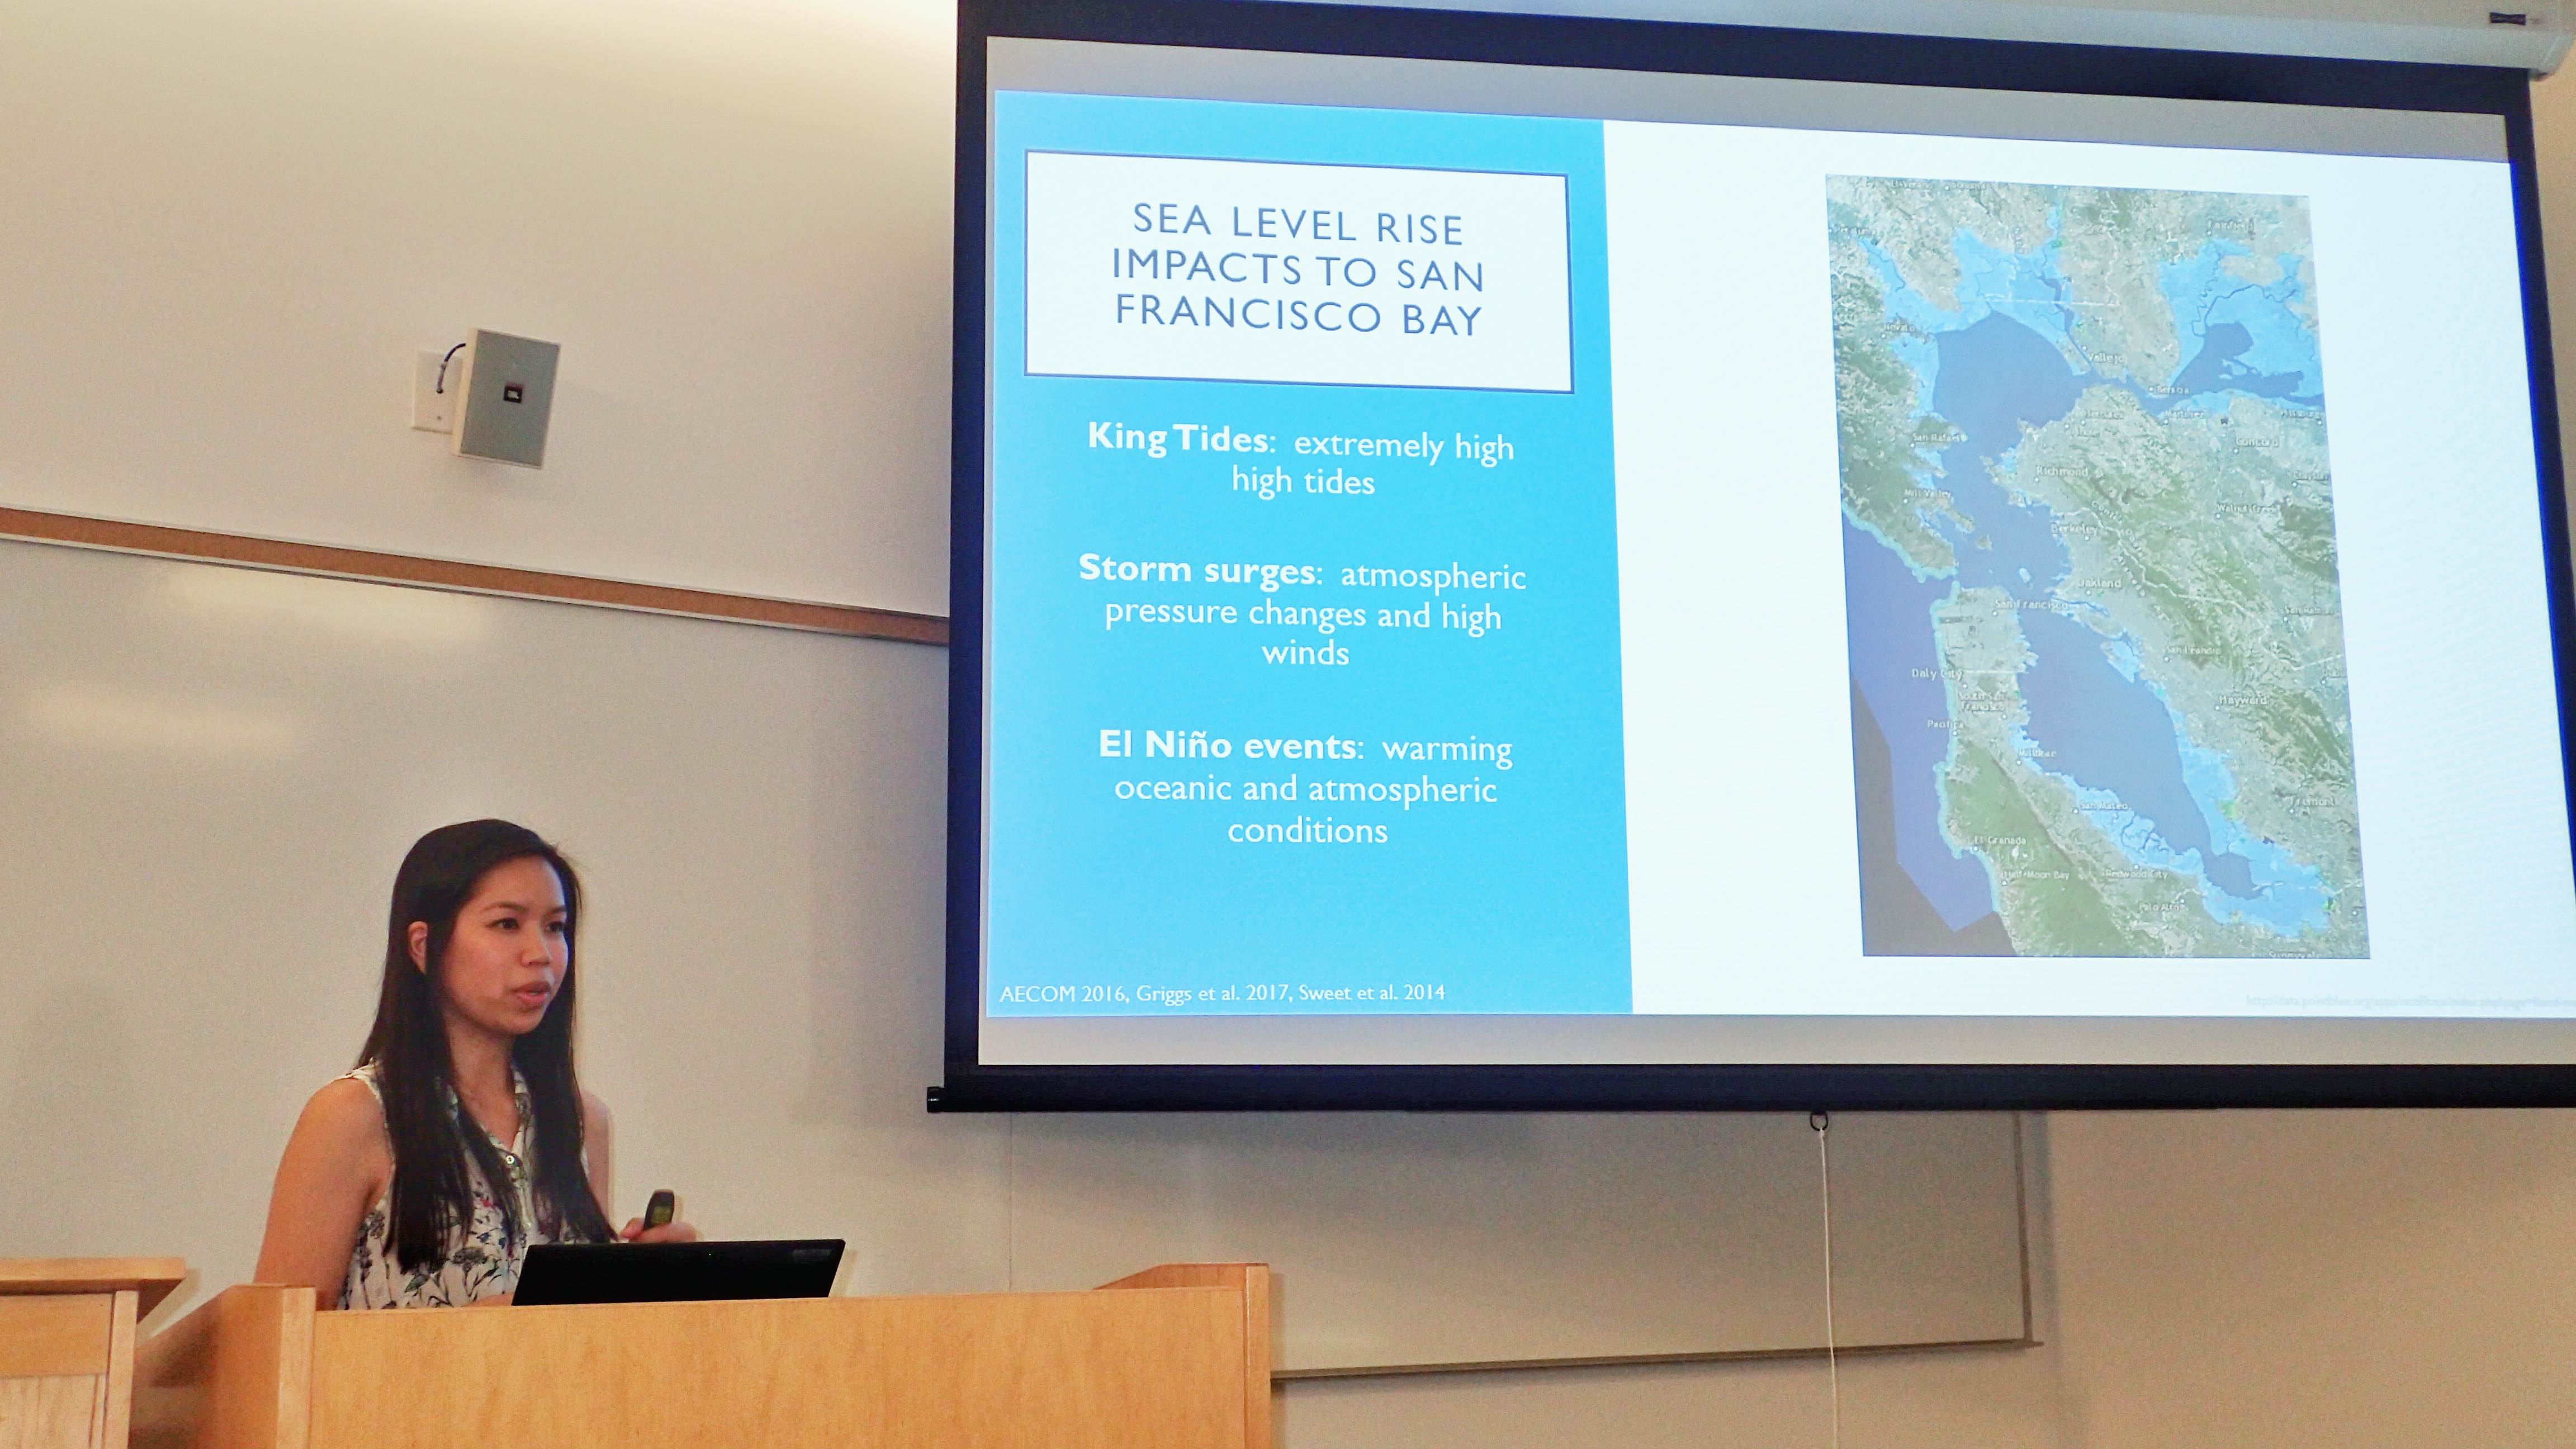 Presenting on my Master's Project during grad school that analyzed sea level rise adaptation strategies for the San Francisco Bay. Photo credit: Gretchen Coffman